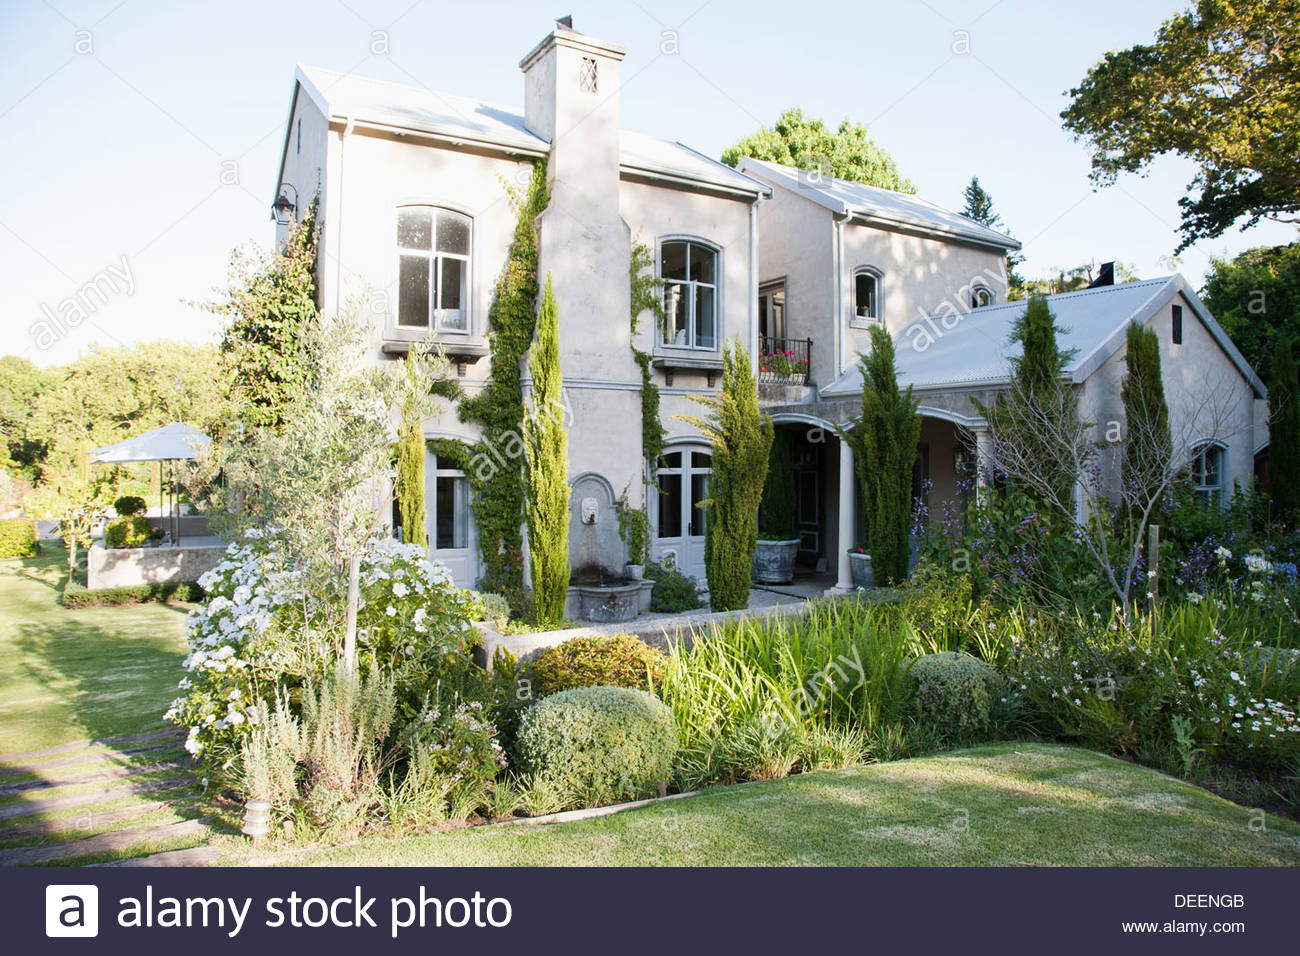 House and garden - Stock Image